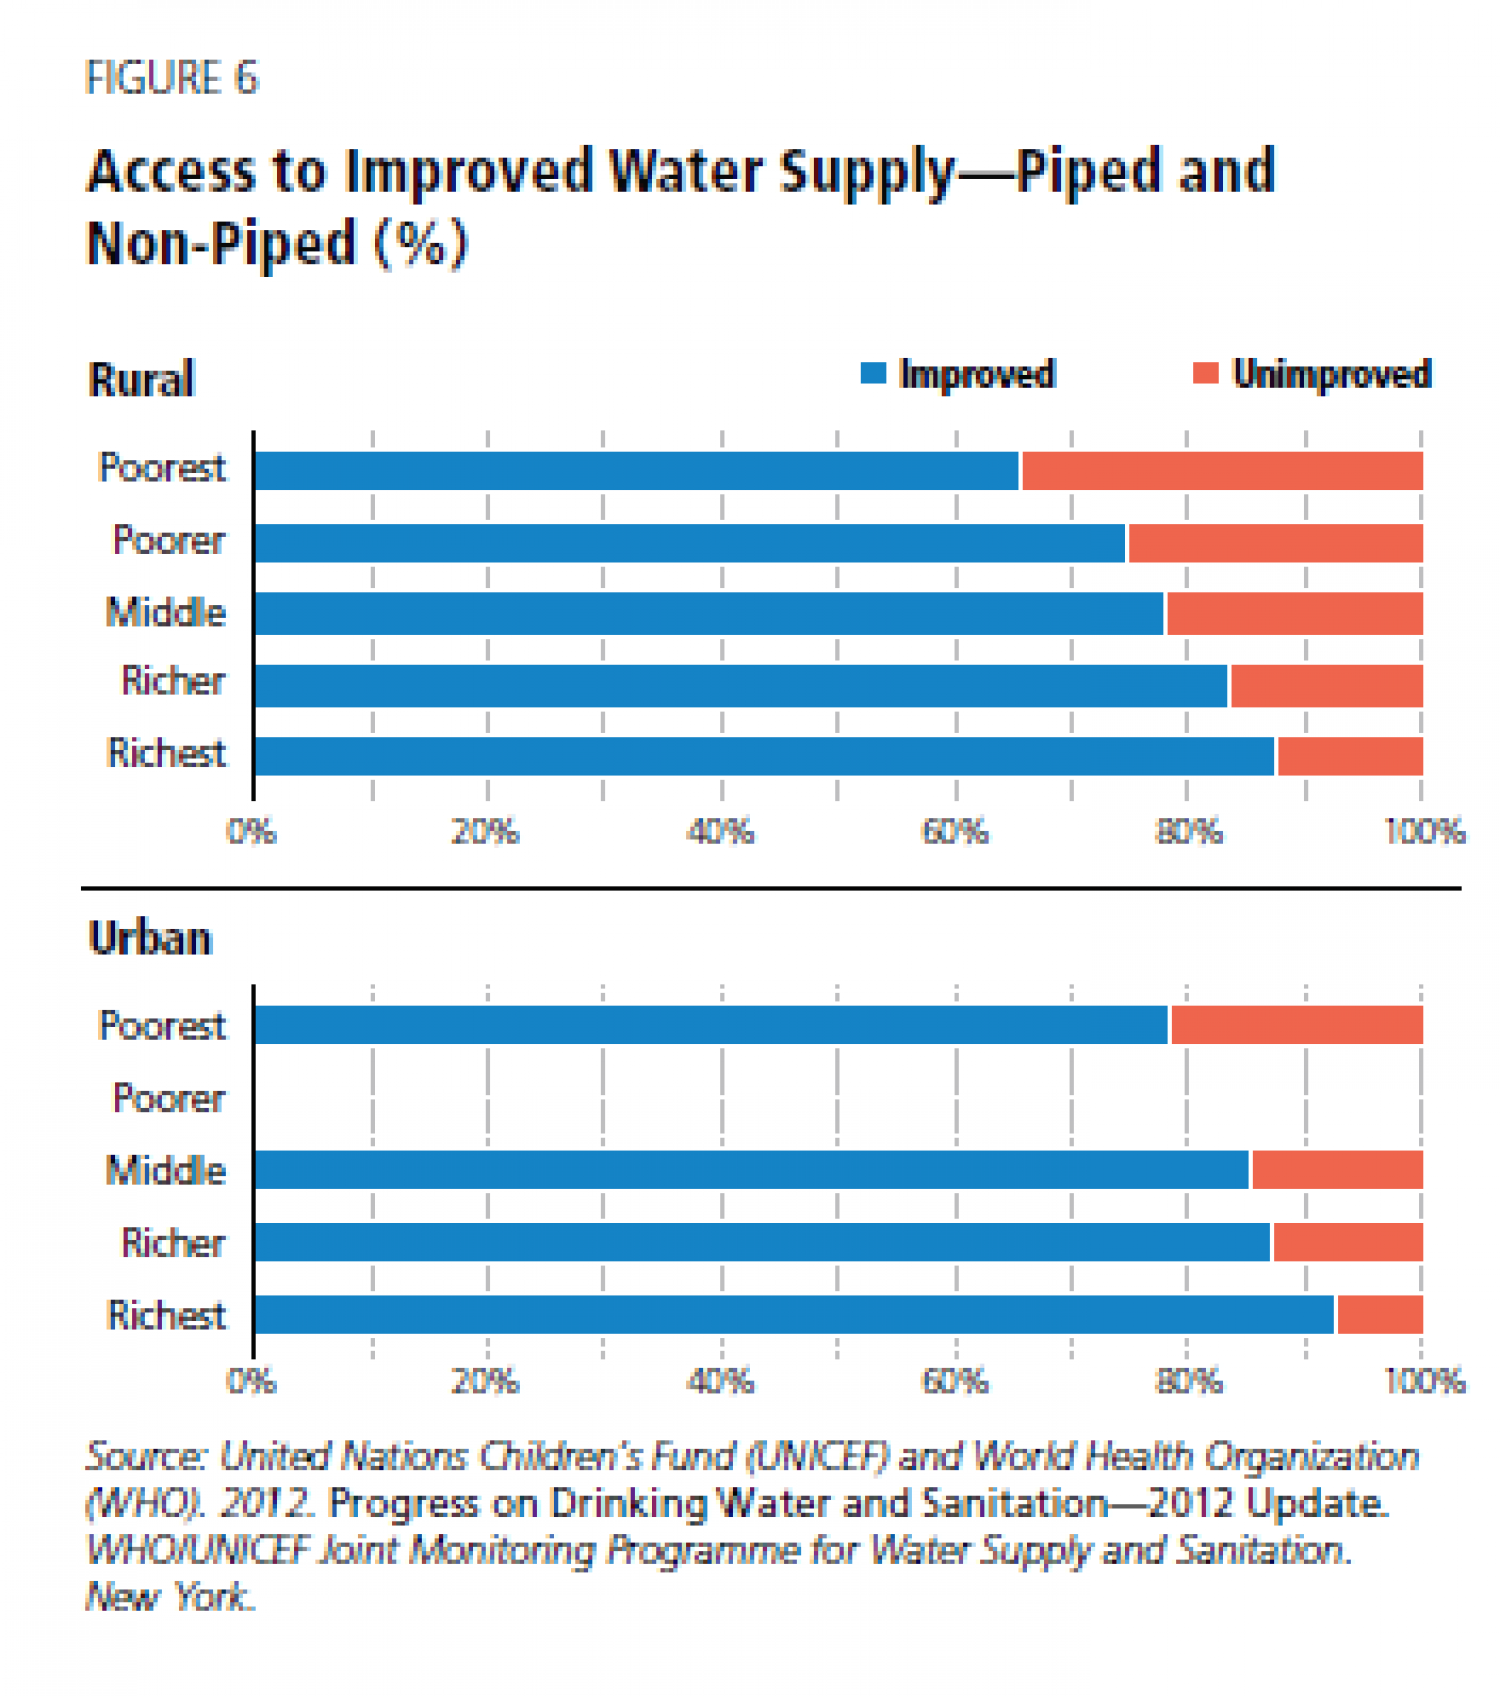 Acccess to improved Water Supply- piped and Non-piped (%) Infographic